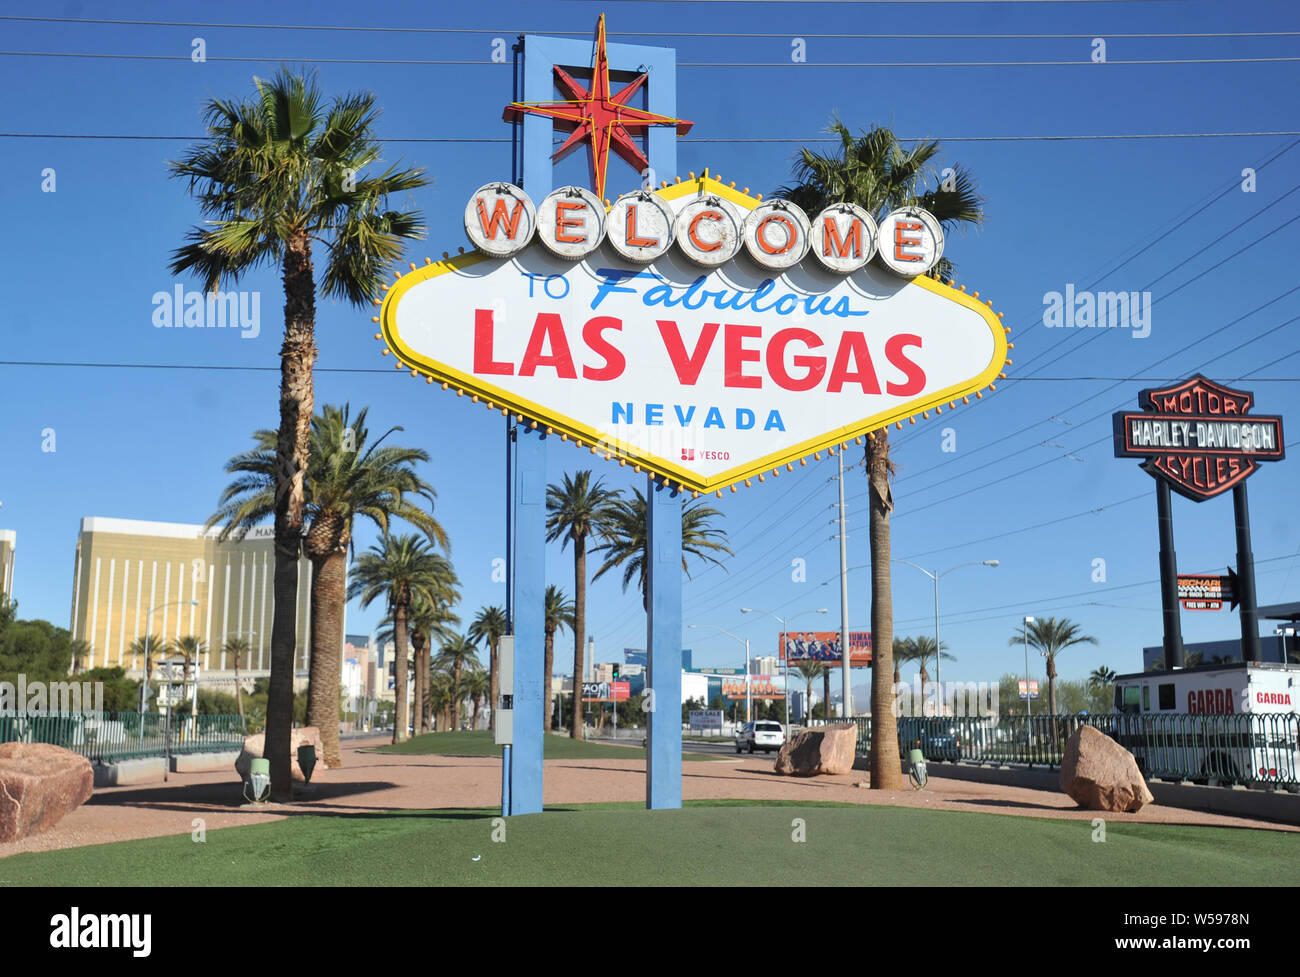 The famous Welcome to Las Vegas sign on the entrance to the city on Las Vegas Boulevard, Nevada Stock Photo